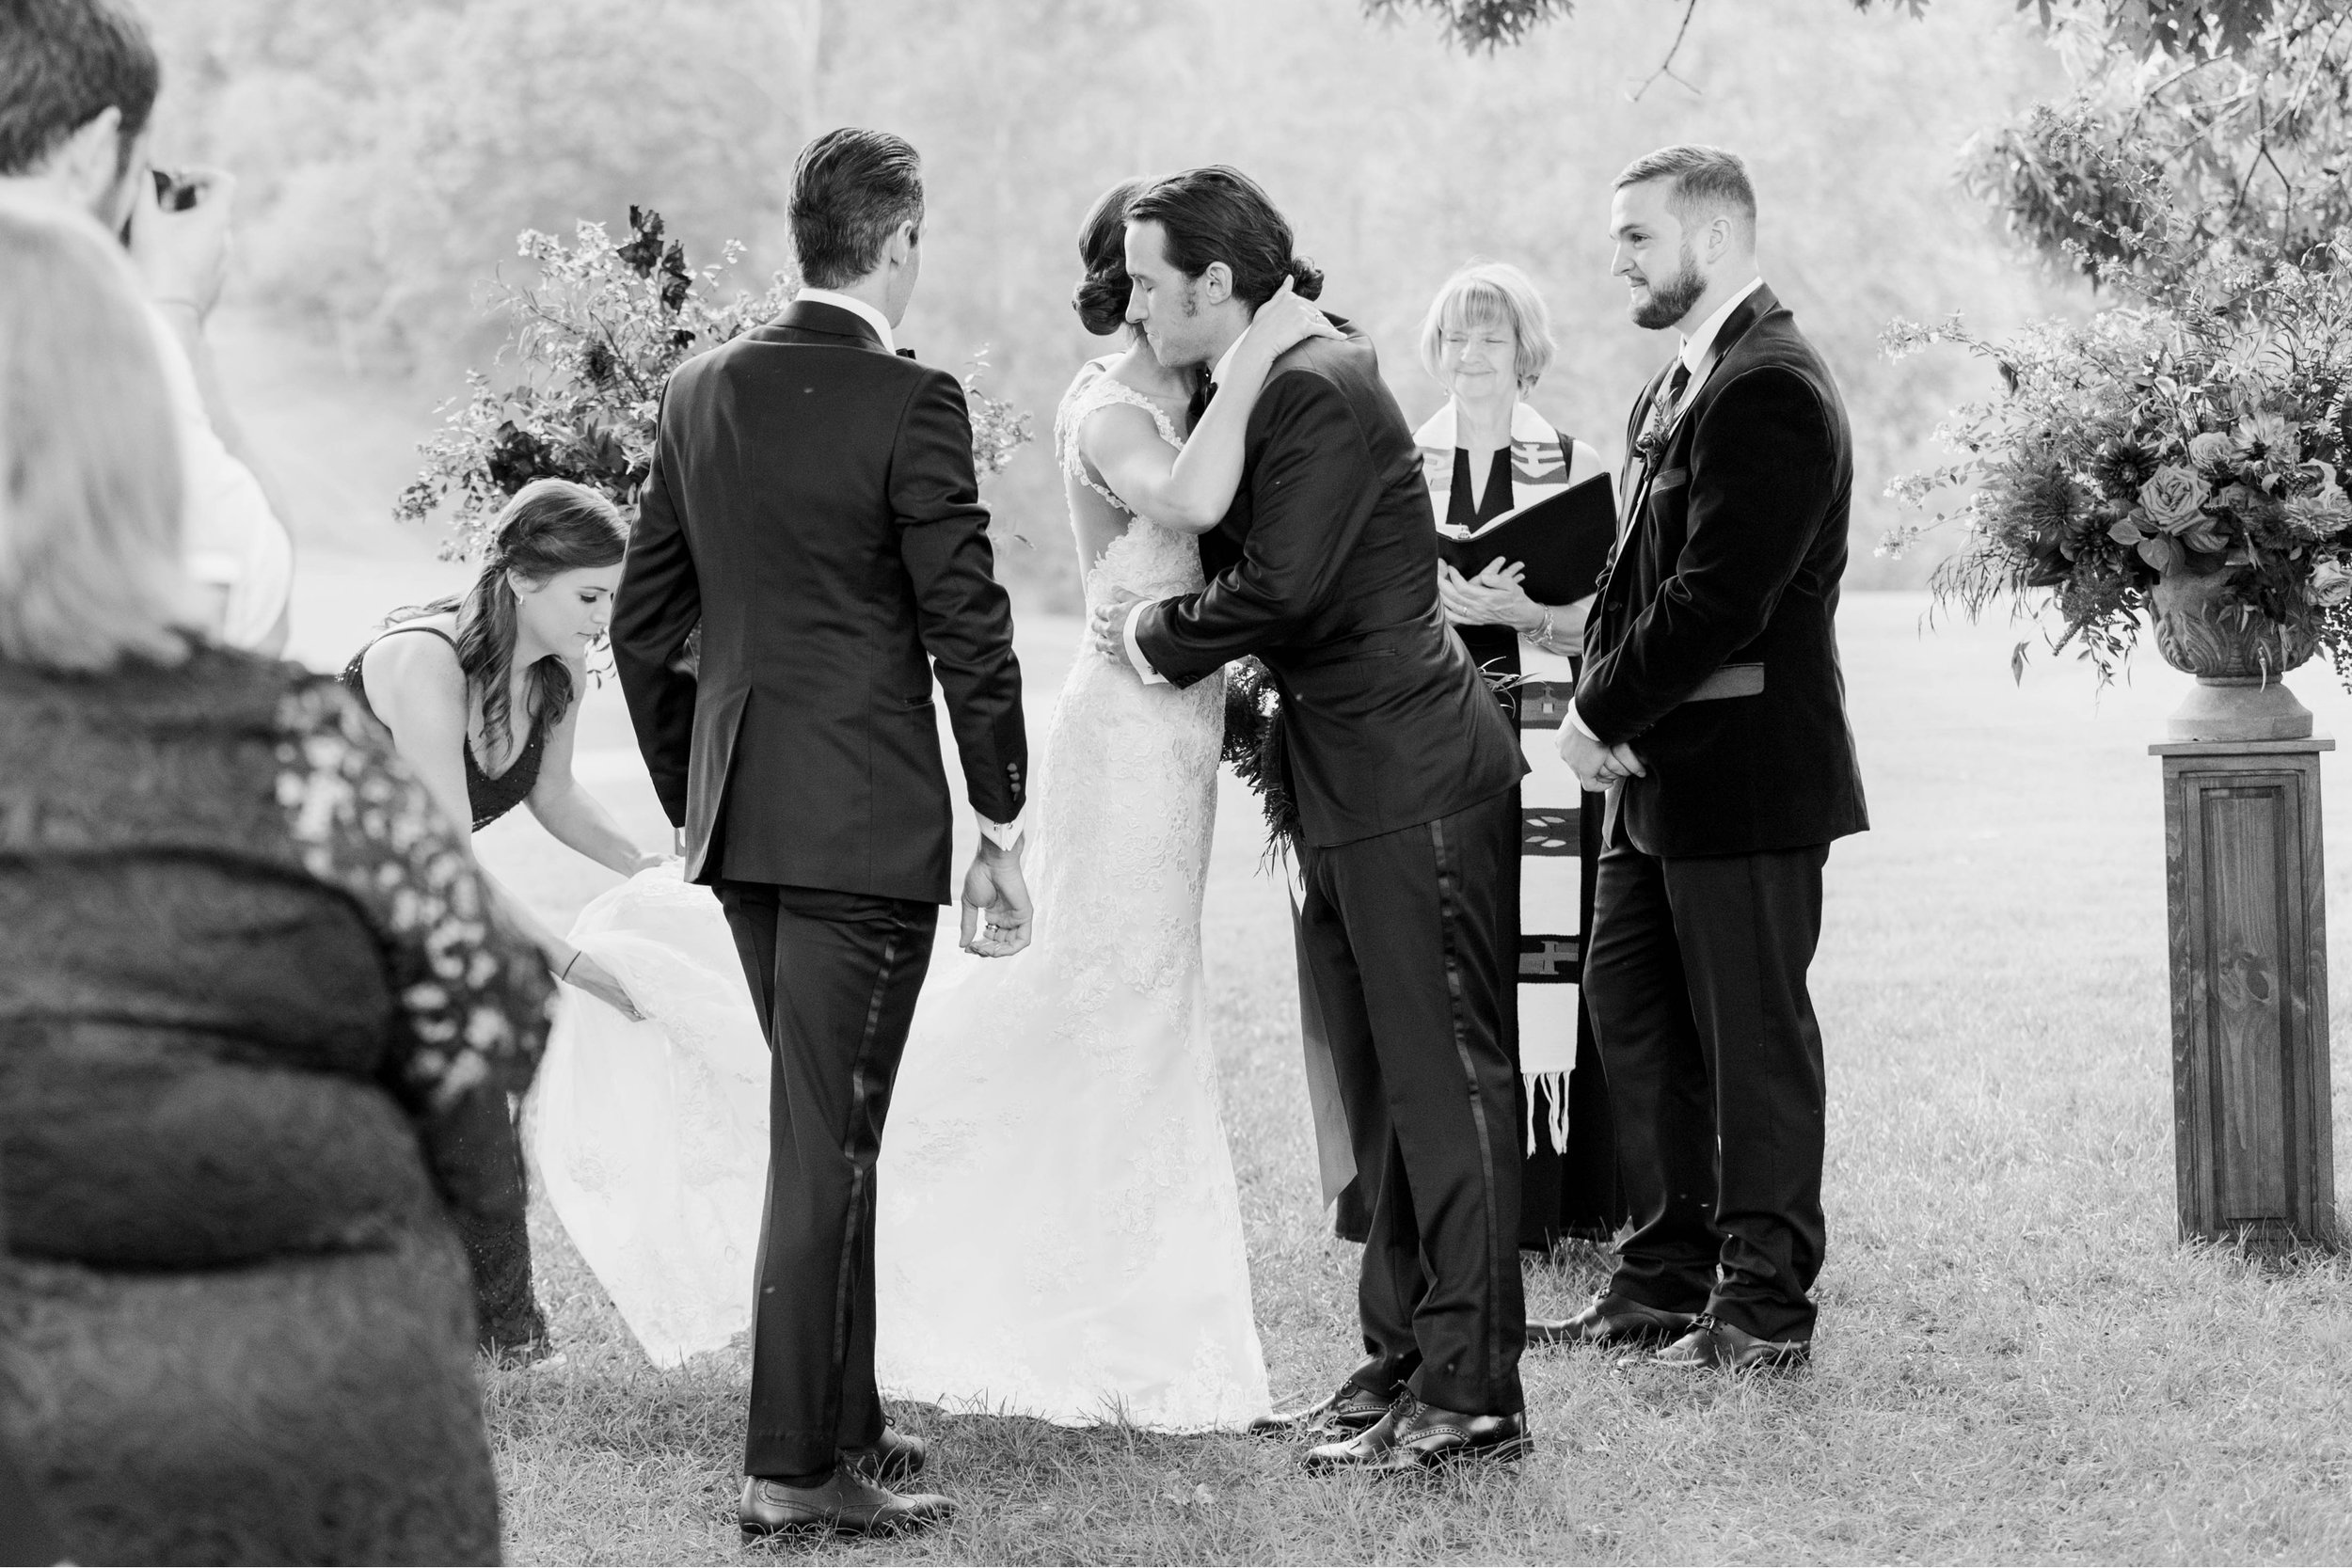 Gordan+Lauren_BoonsboroCountryClubWedding_Virginiaweddingphotographer_LynchburgVi 49.jpg